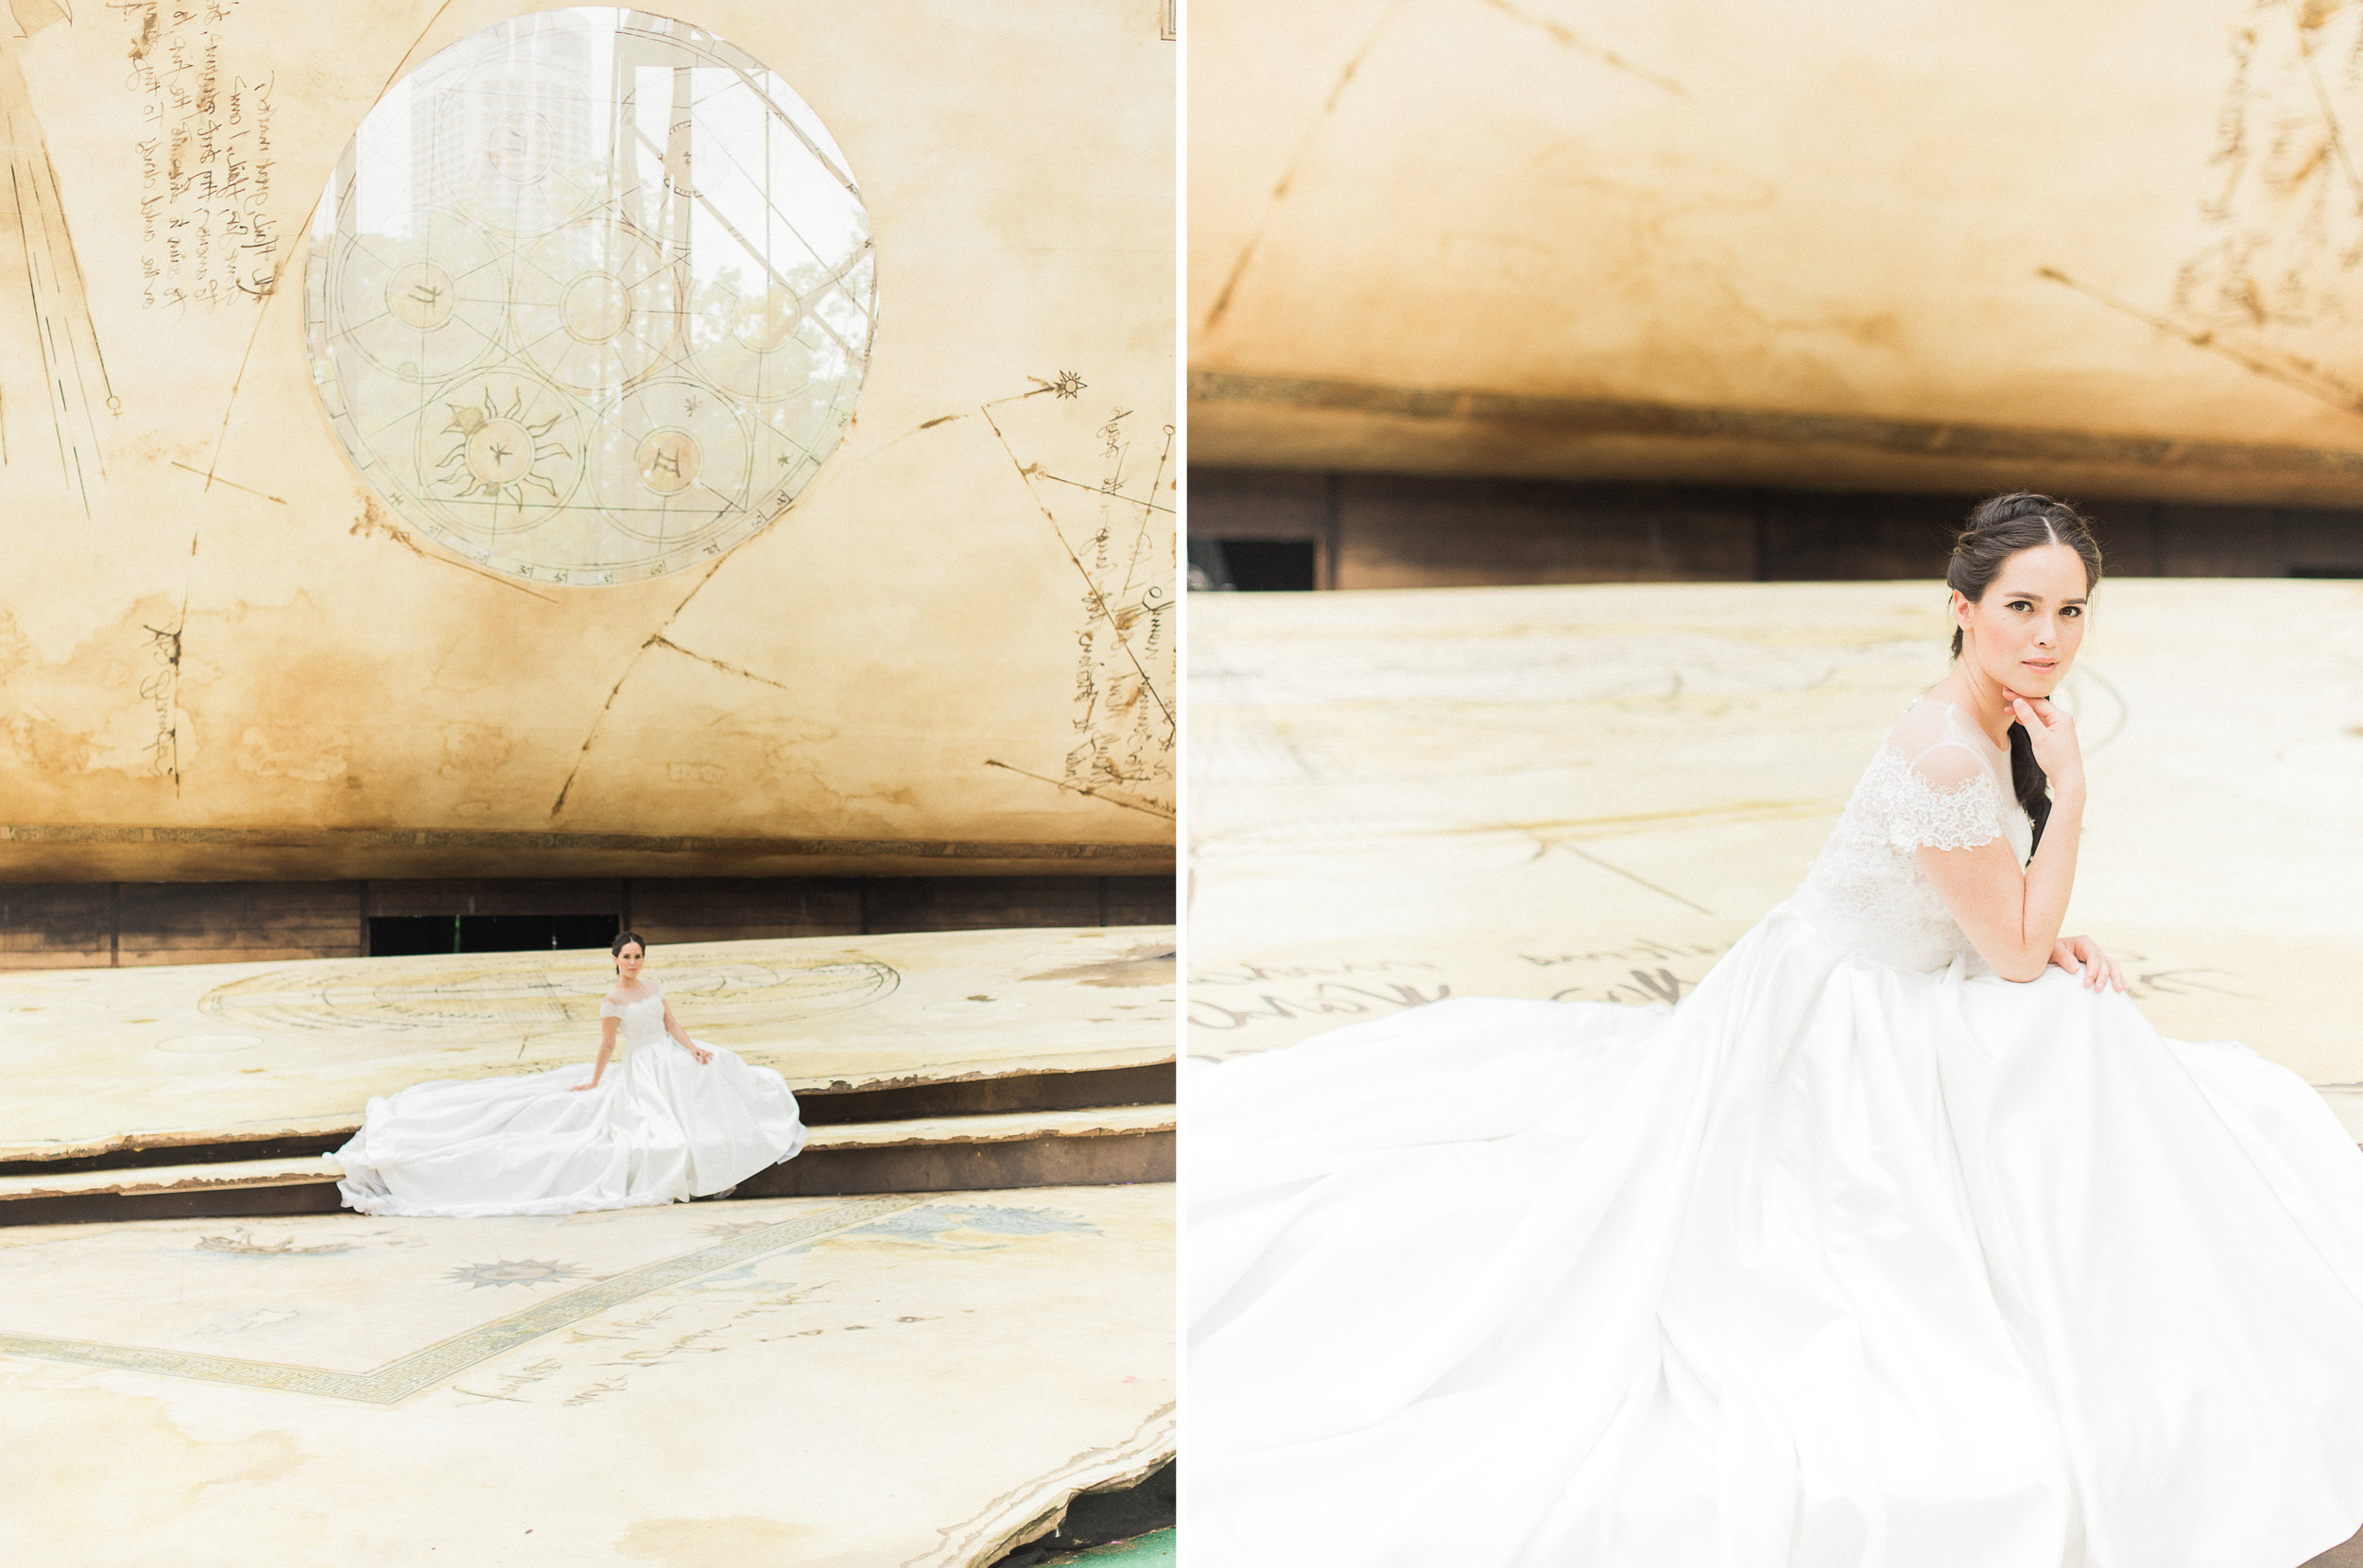 chen sands editorial bridal shoot shakespeare the wedding scoop singapore collage 6.jpg